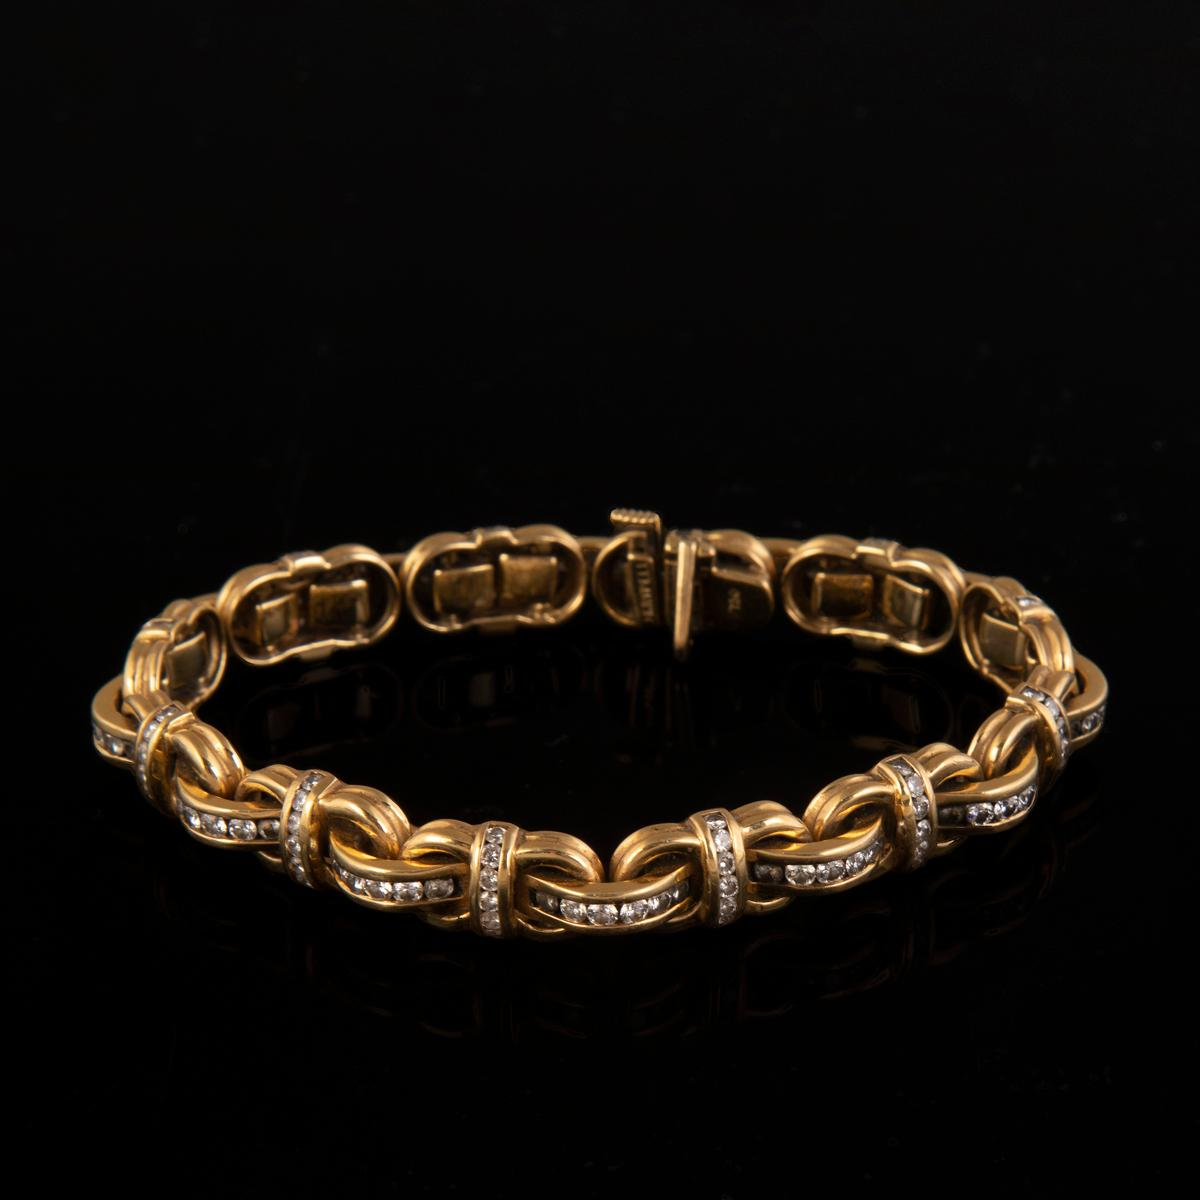 A Charles Krypell 18K Yellow Gold and Diamond Bracelet